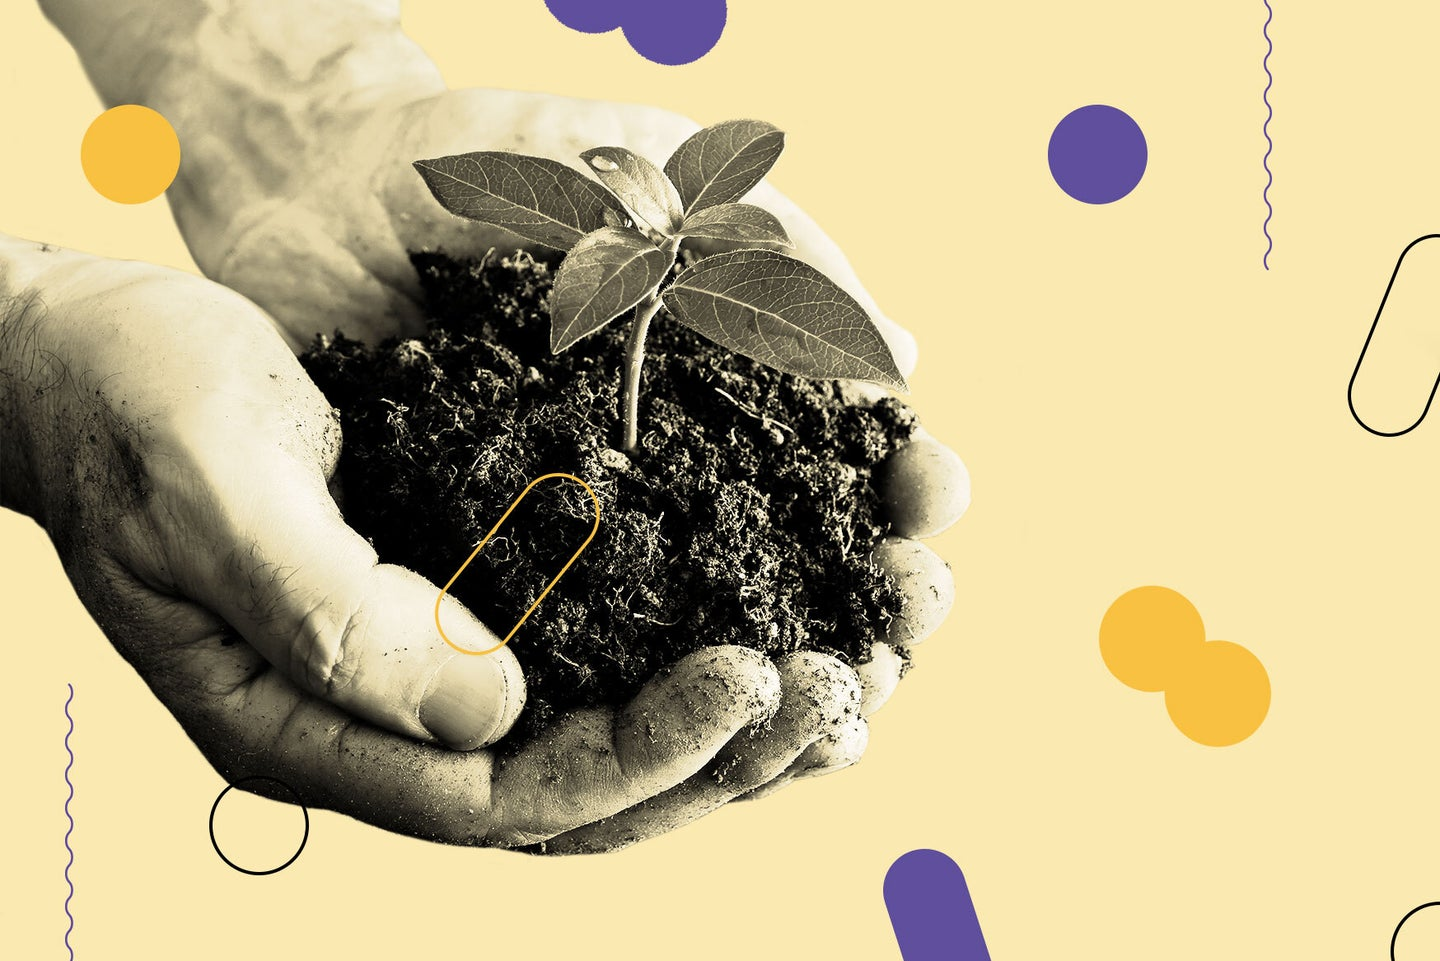 person's hands holding tiny plant growing out of soil